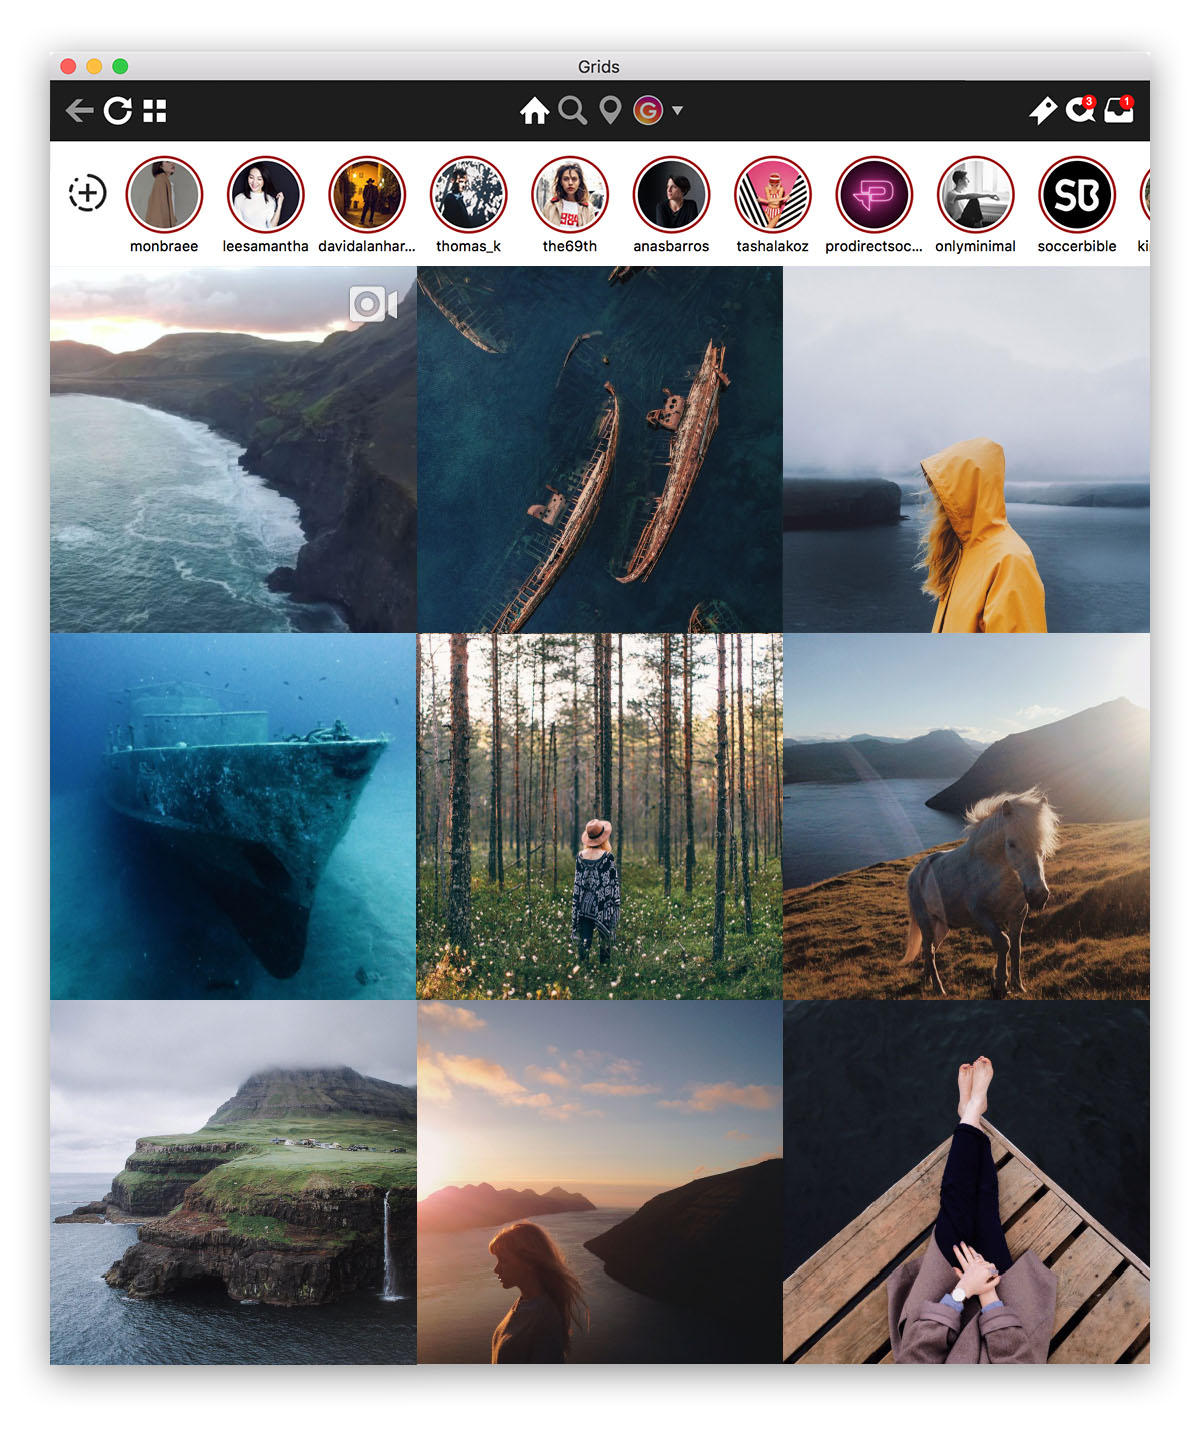 Grids for Instagram – Creating Huge Profiles On Instagram With Grids